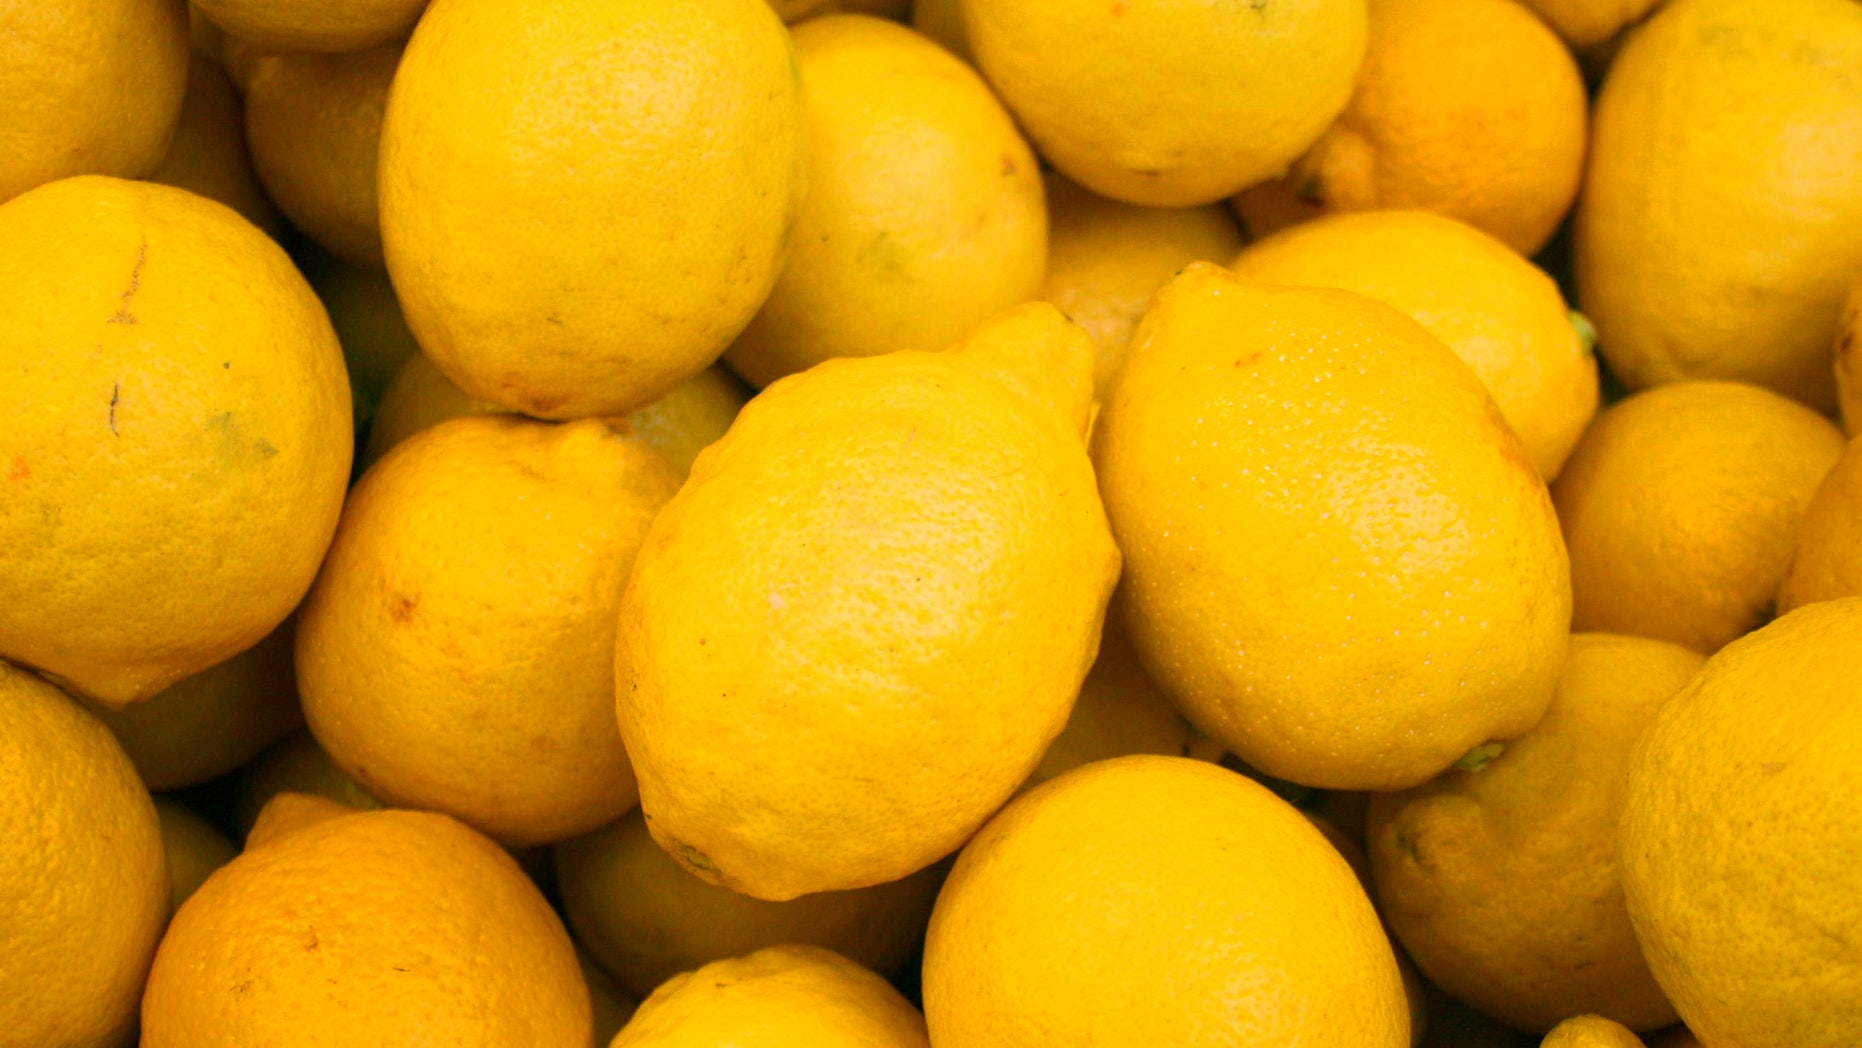 A small study suggests that the smell of lemon can help people feel thinner and lighter.